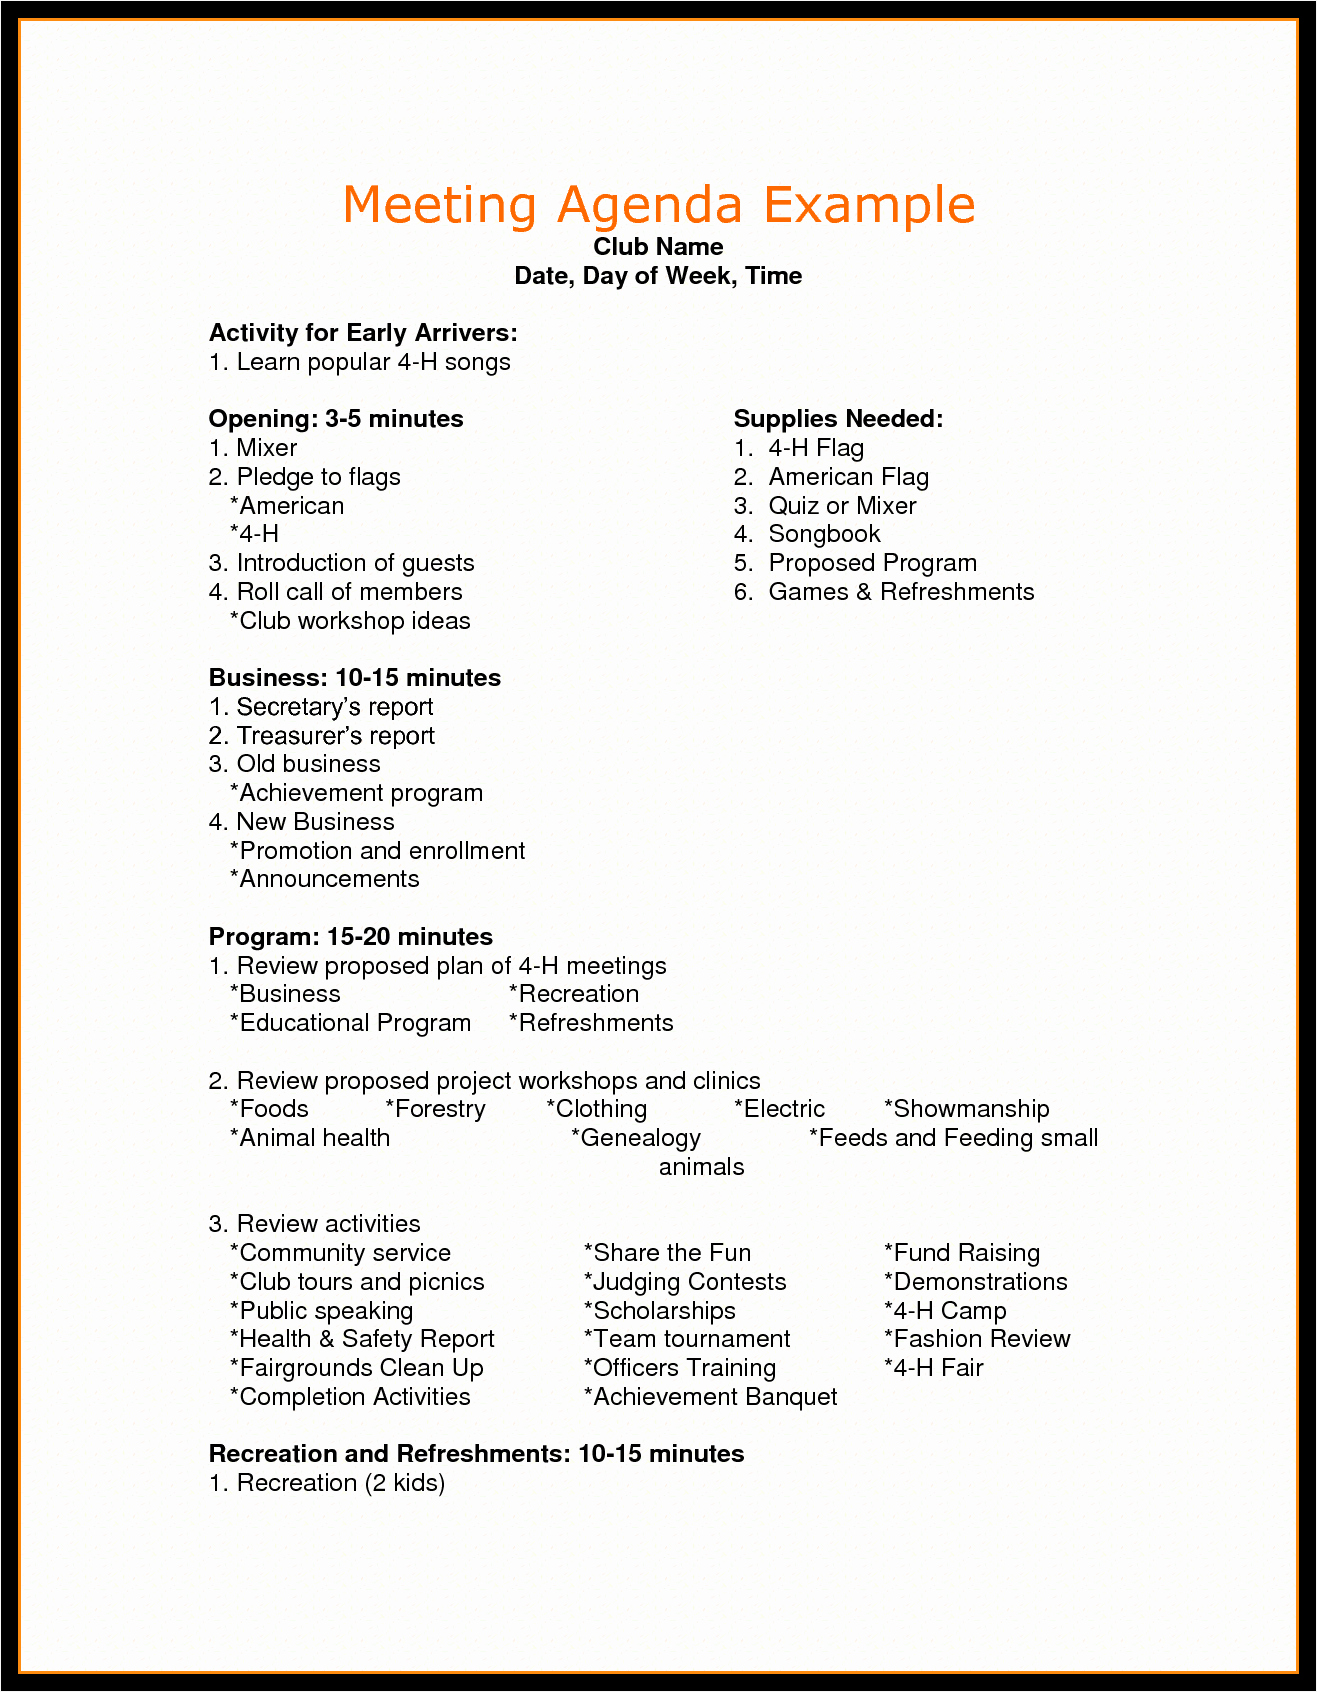 Agenda format for A Meeting Elegant Agenda for Meeting Example Mughals